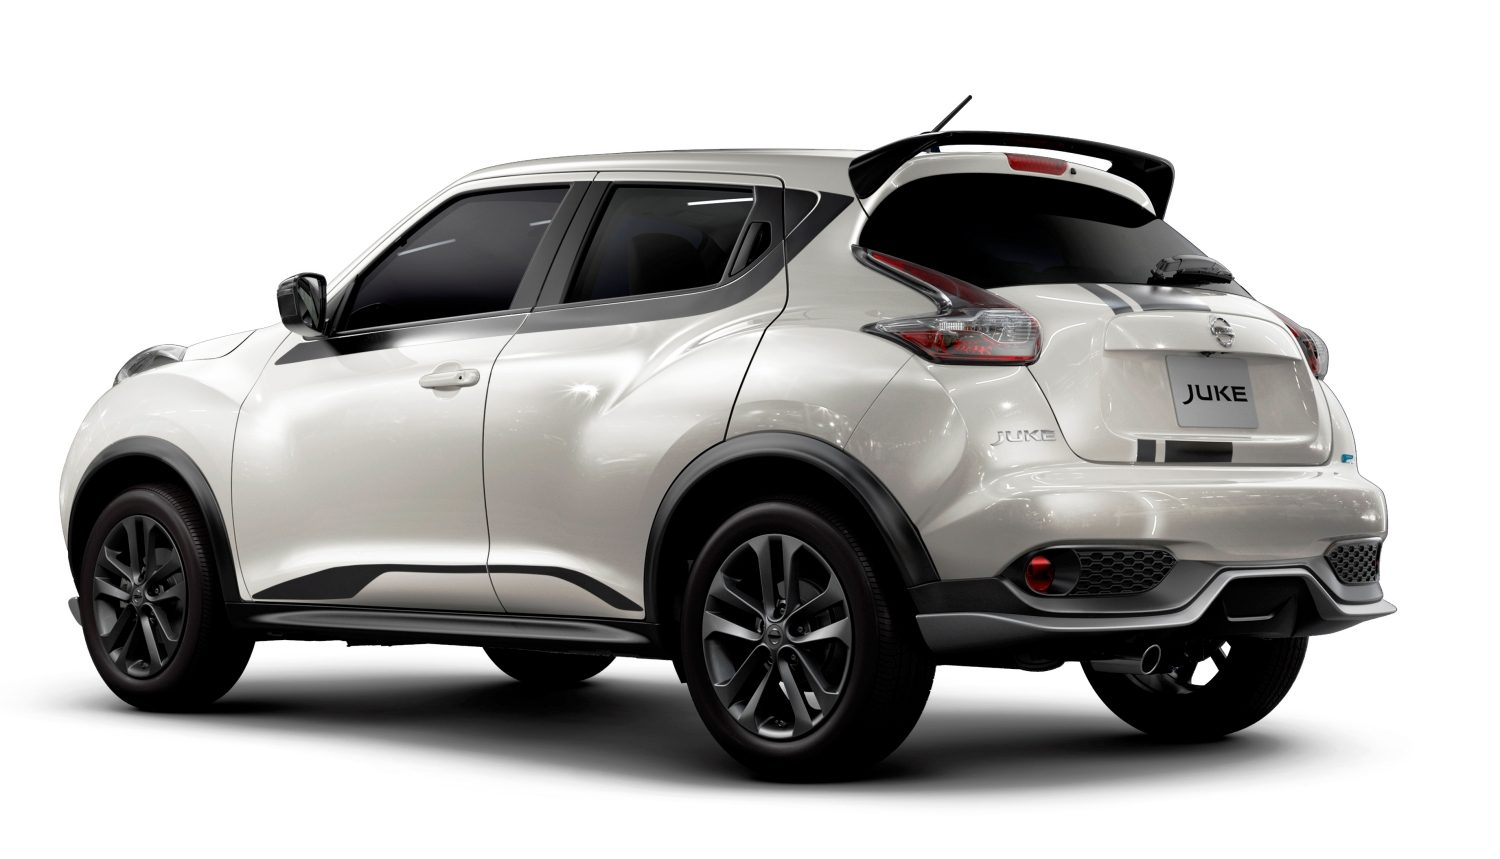 nissan juke tokyo edition nissan motor thailand. Black Bedroom Furniture Sets. Home Design Ideas